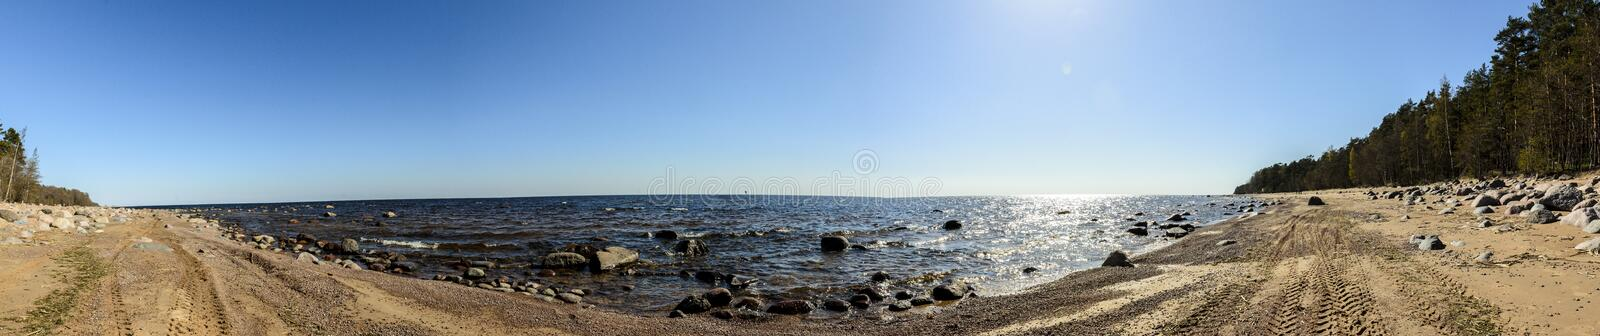 Panorama of the Gulf of Finland, sandy beach with stones and pine trees. Blue sky and water stock photo